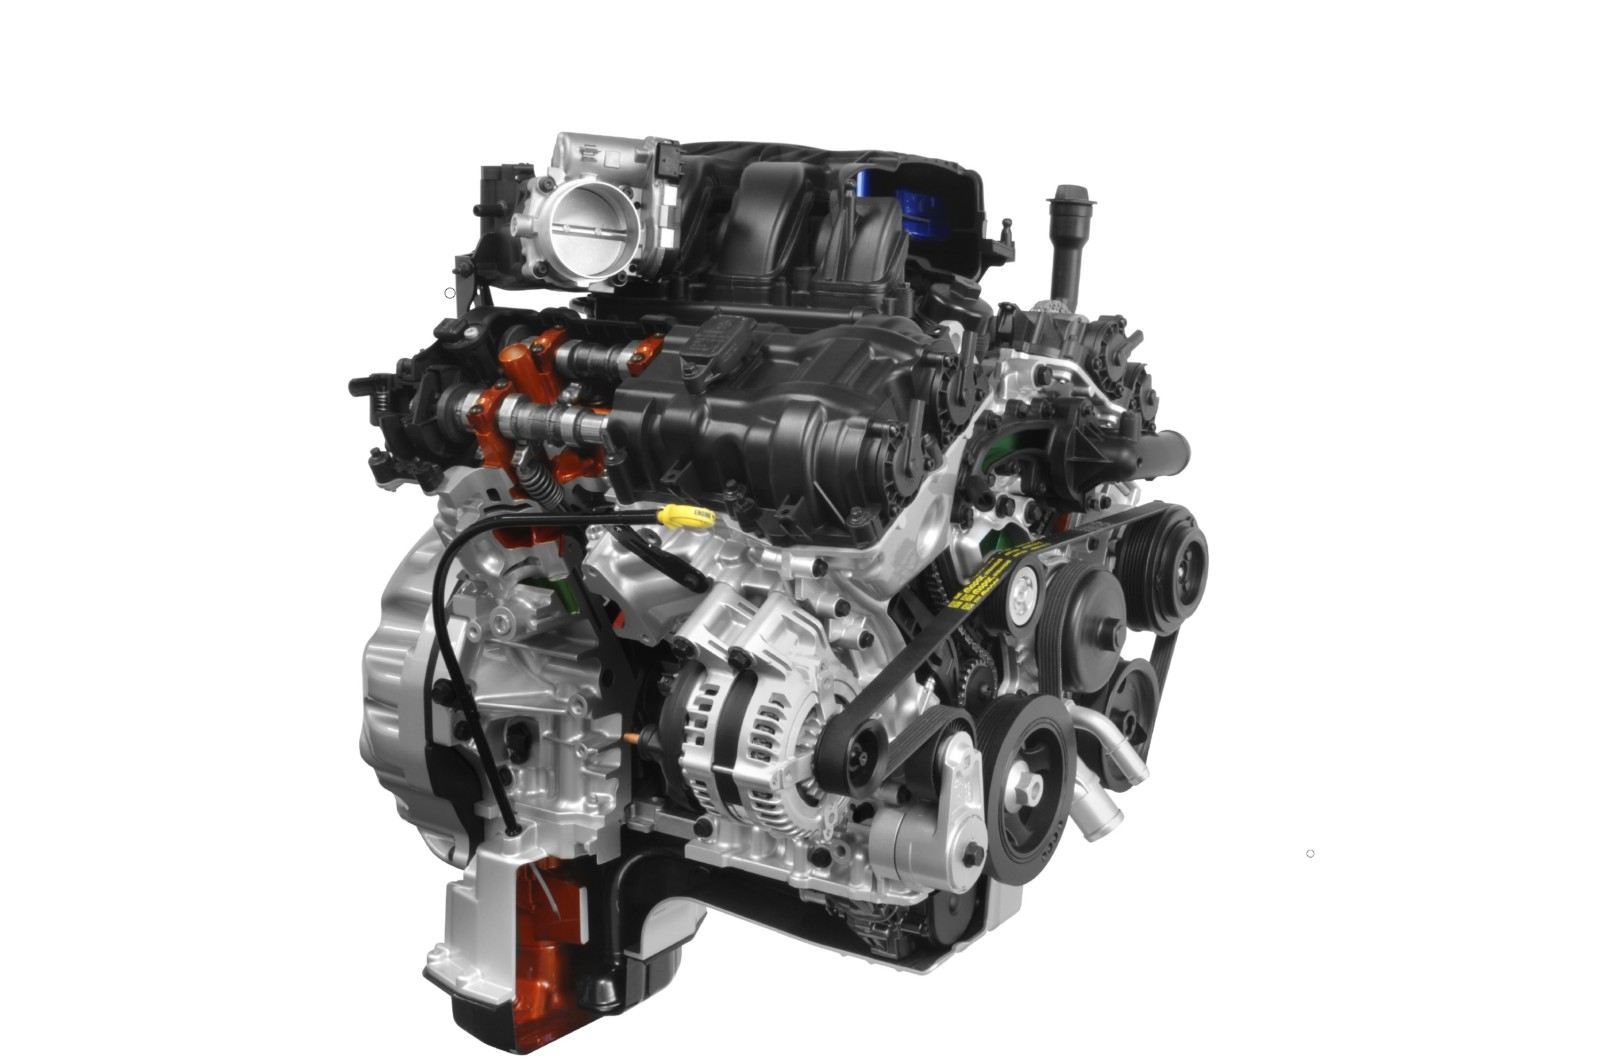 Dodge 3 8 Liter Engine Diagram Reinvent Your Wiring Ford Chrysler To Follow Trend Add Direct Injection V 6 Turbo Too Rh Greencarreports Com 35 59